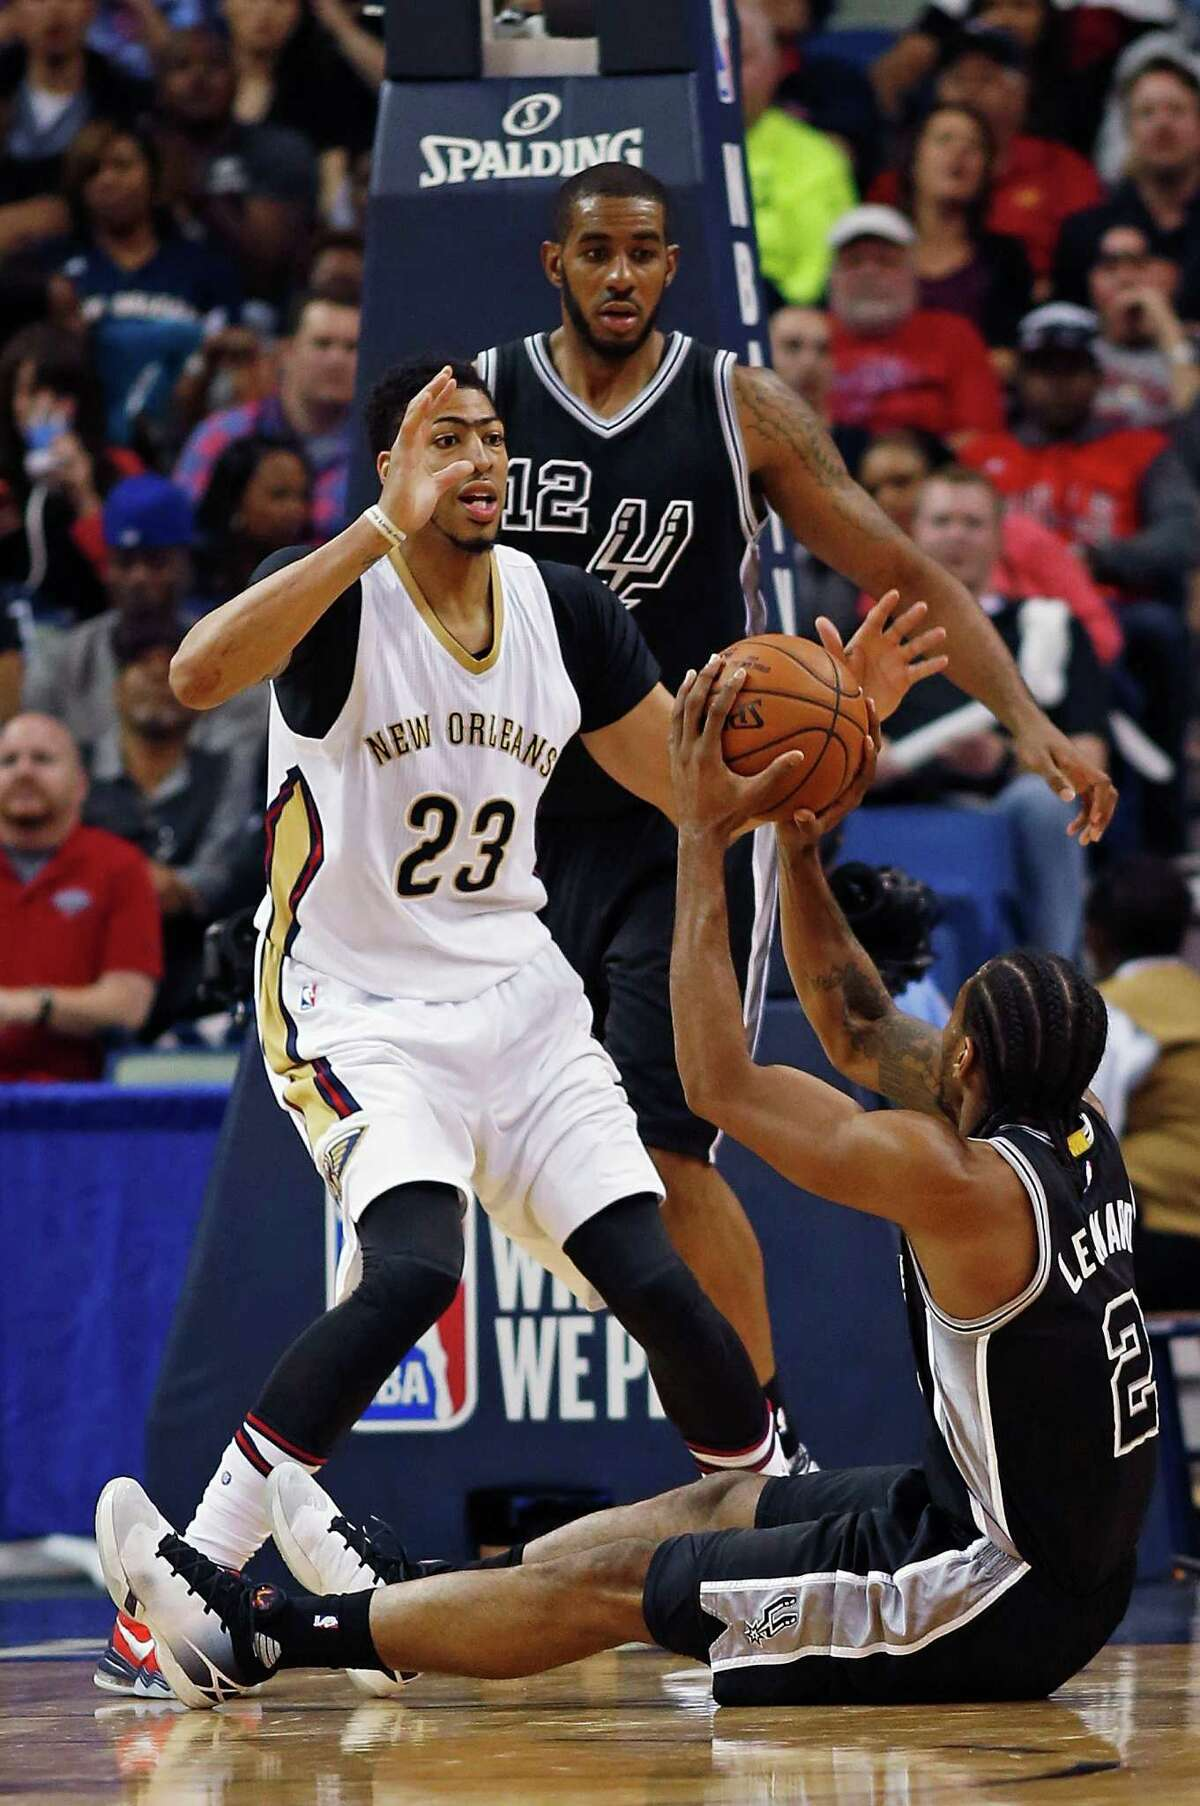 San Antonio Spurs forward Kawhi Leonard (2) attempts to pass from the ground against New Orleans Pelicans forward Anthony Davis during the first half of an NBA basketball game in New Orleans, Thursday, March 3, 2016. (AP Photo/Max Becherer)